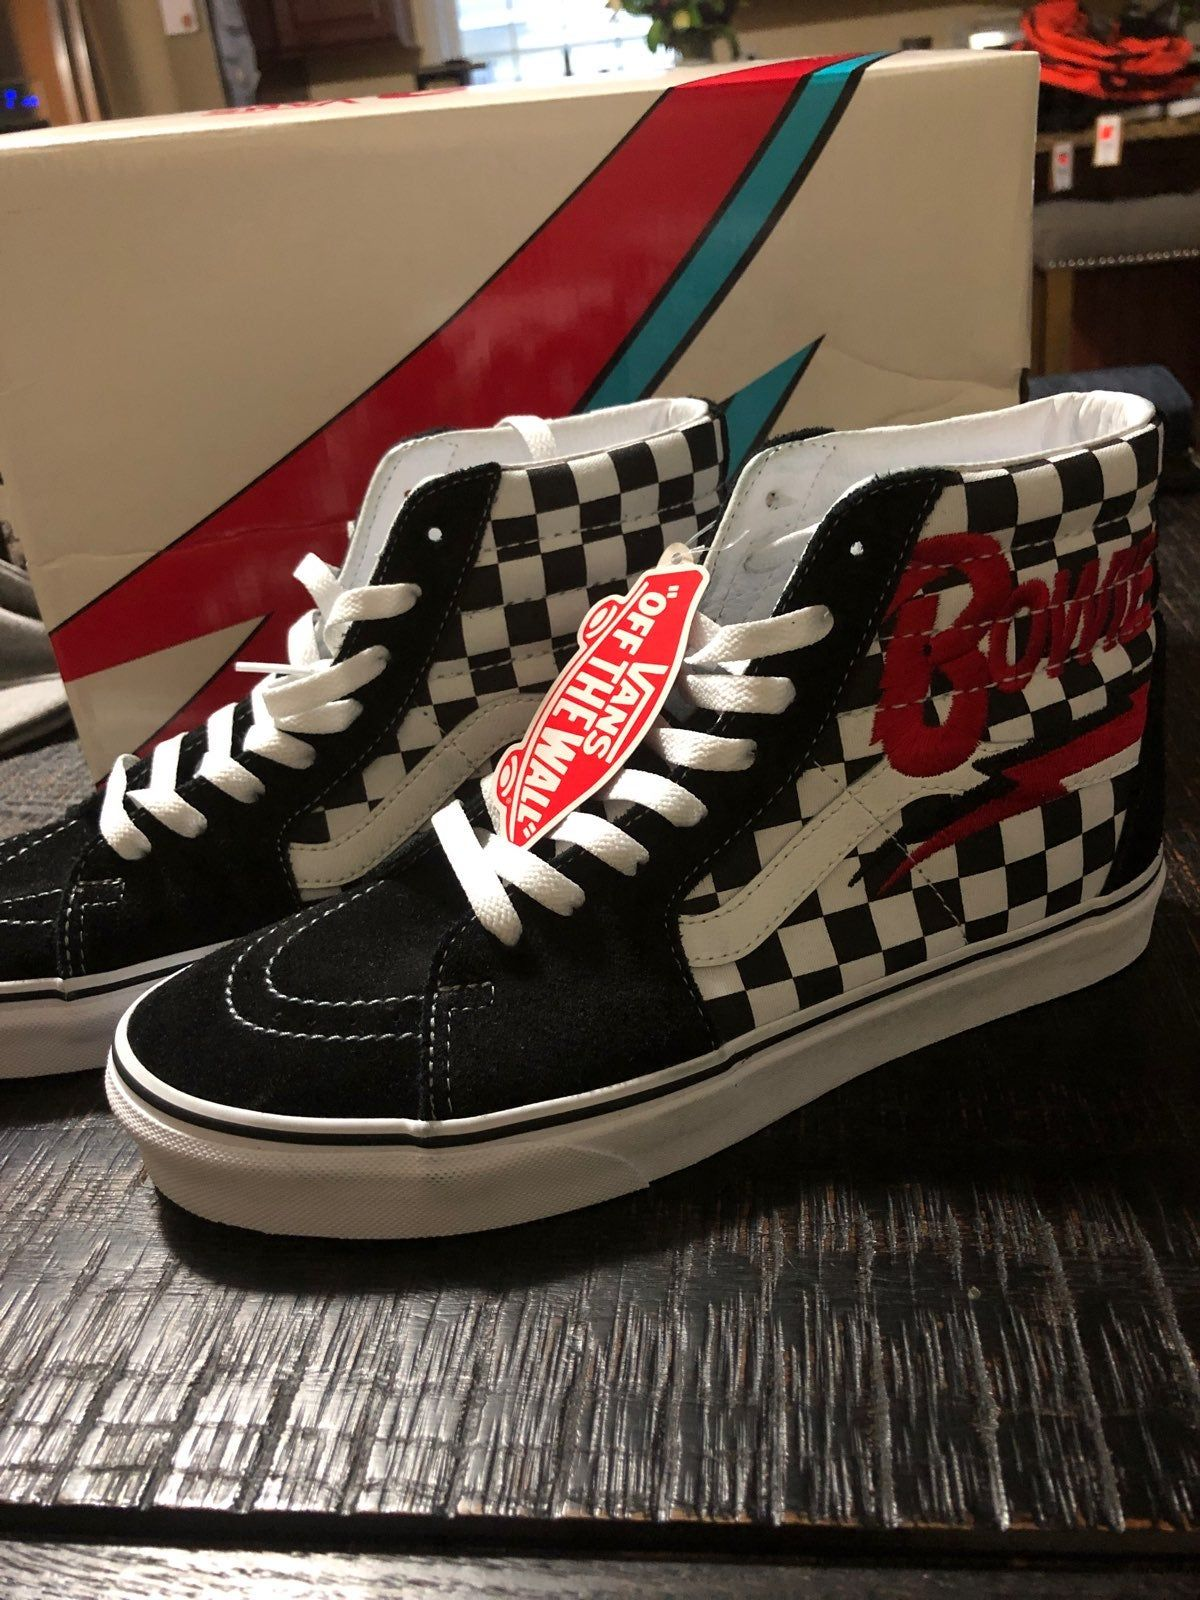 Vans x David Bowie limited edition Sk8